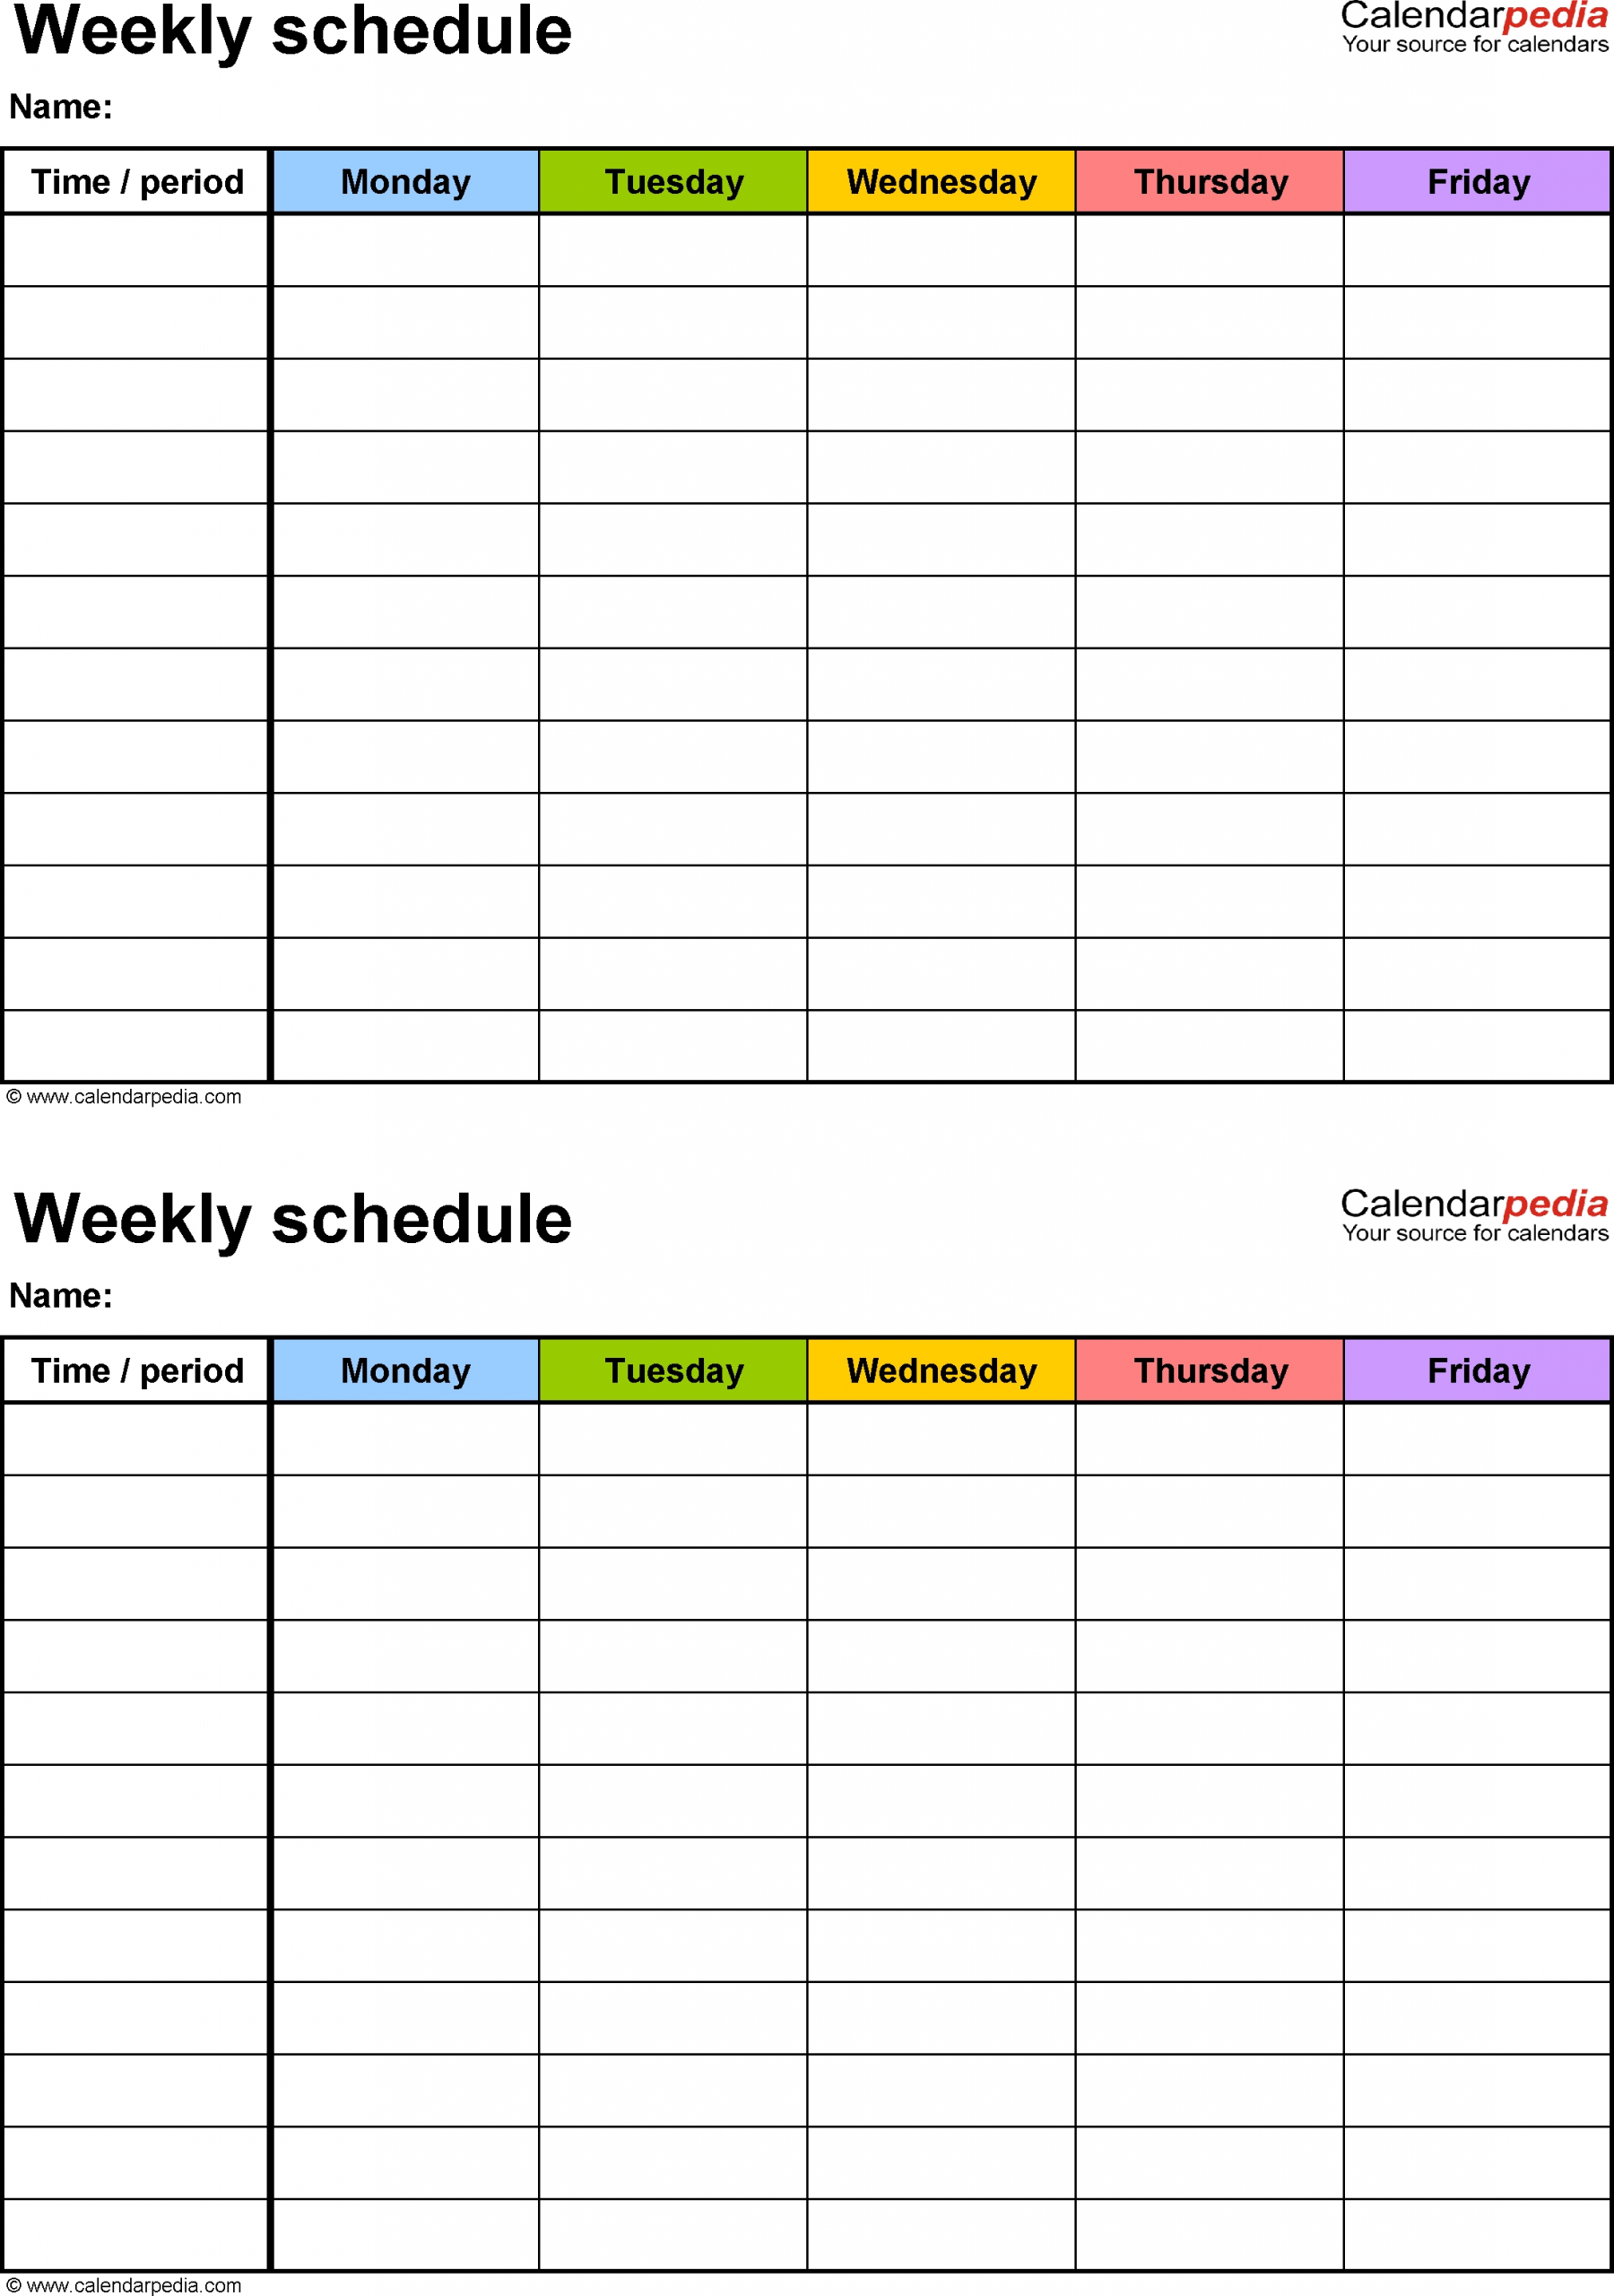 Monday To Friday Monthly Calendar Template | Calendar Monday To Friday Calendar Template